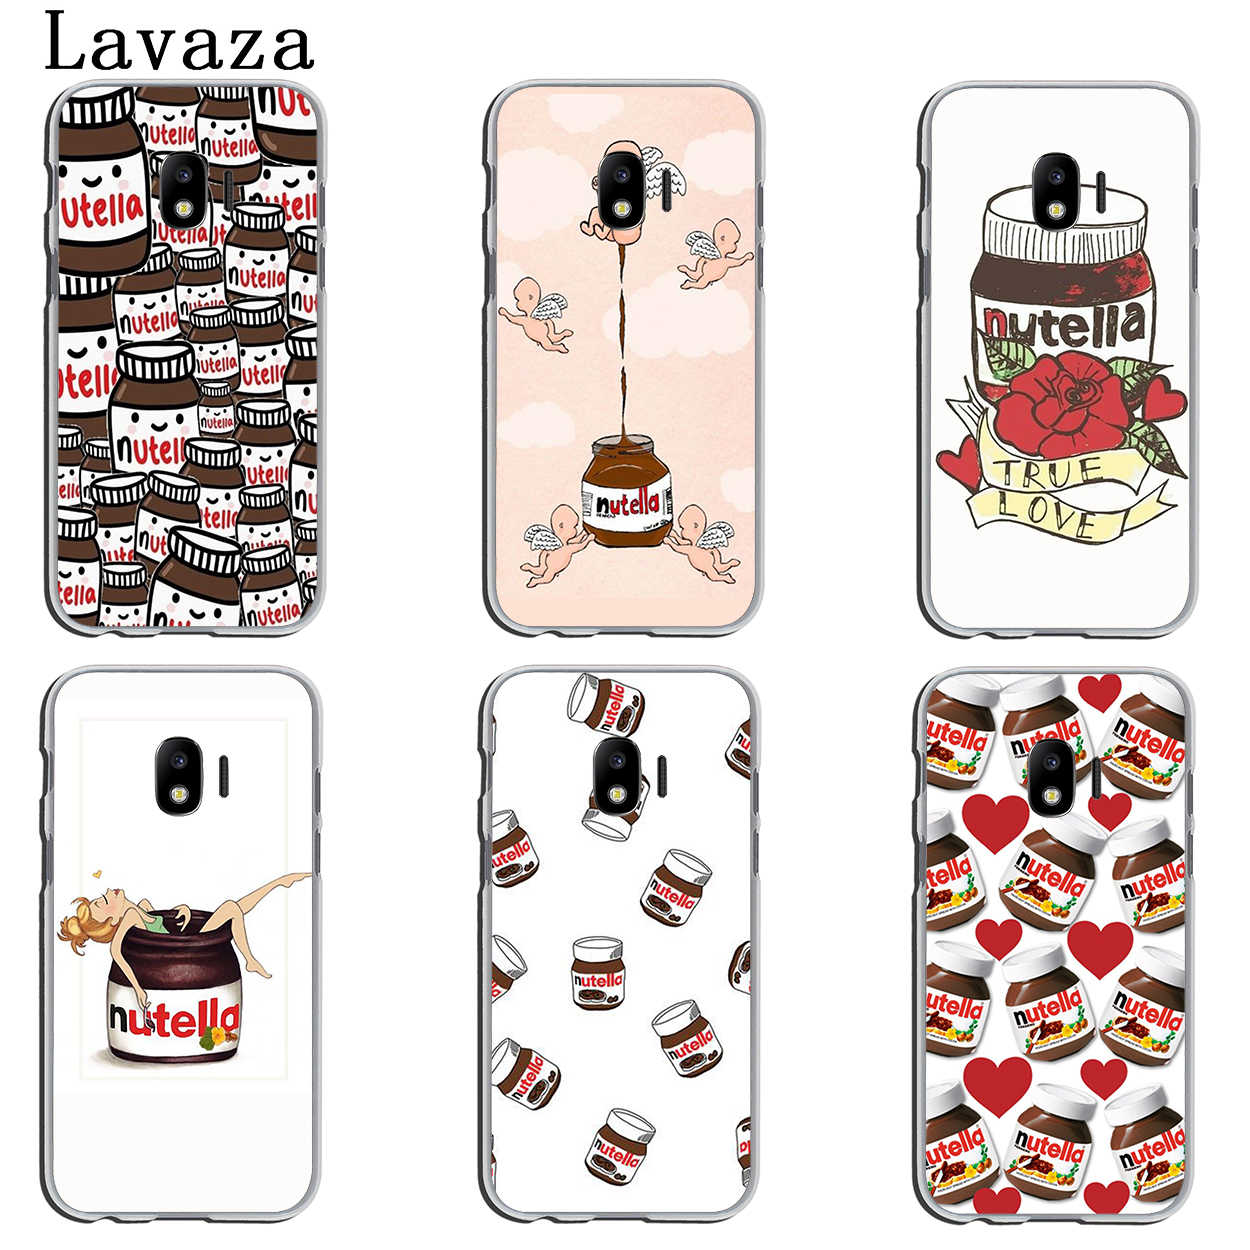 cover samsung galaxy j5 2015 tumblr